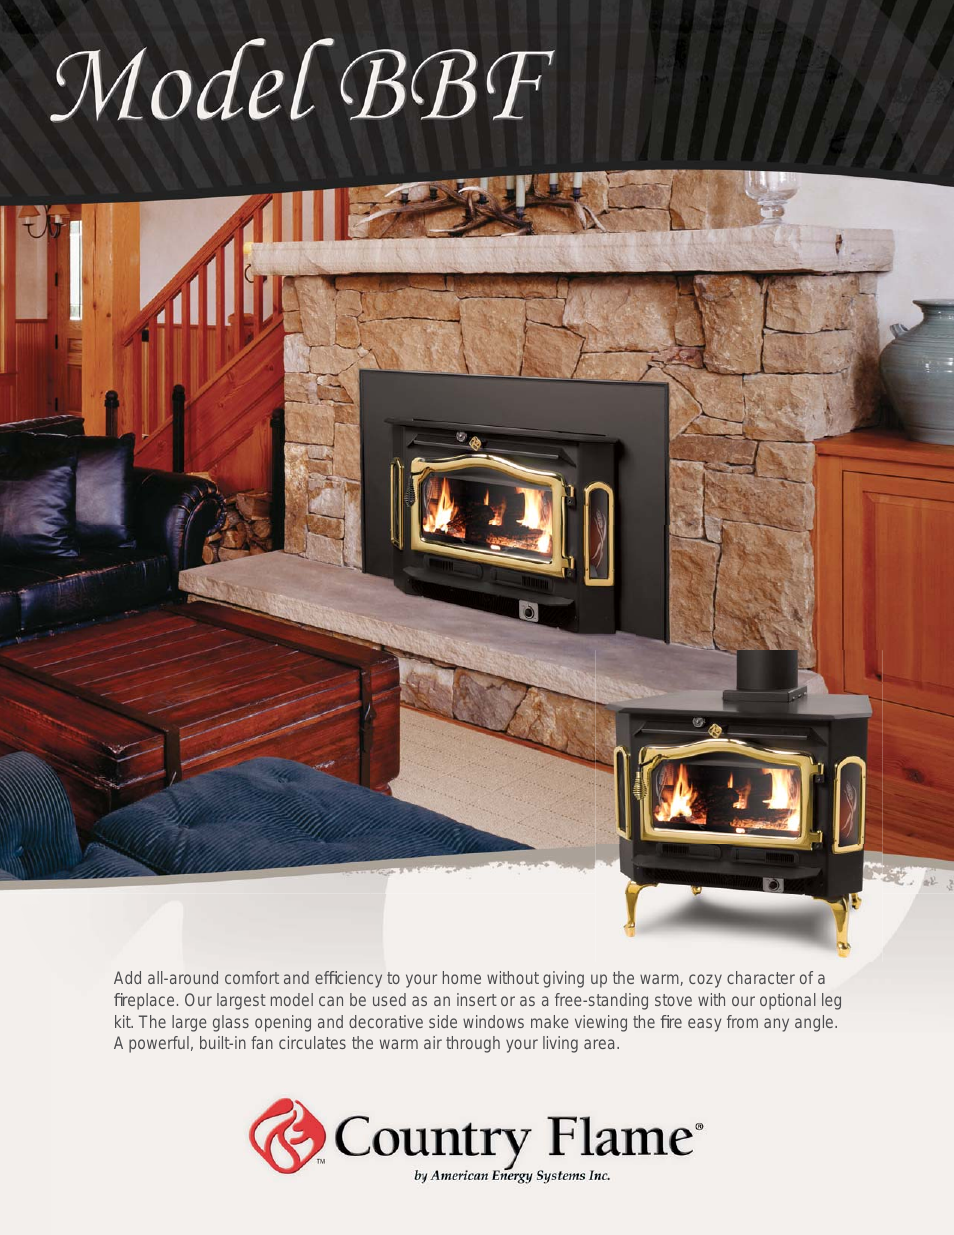 Country Flame Fireplace Insert Fresh Country Flame Fireplace Insert Replacement Parts Fireplace